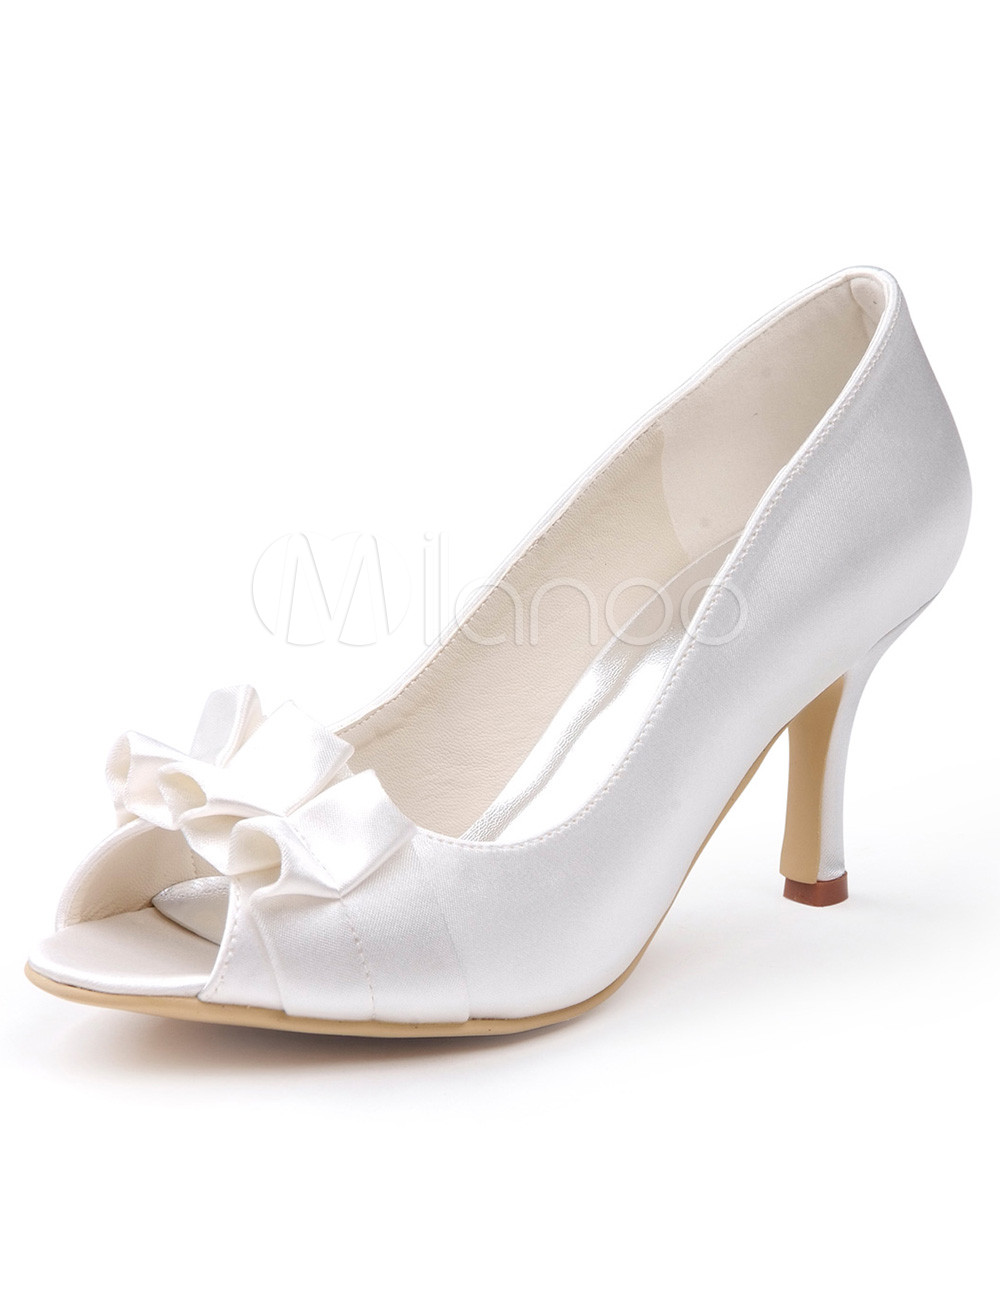 White Crochet Peep Toe Silk And Satin Grace Woman's Evening Shoes